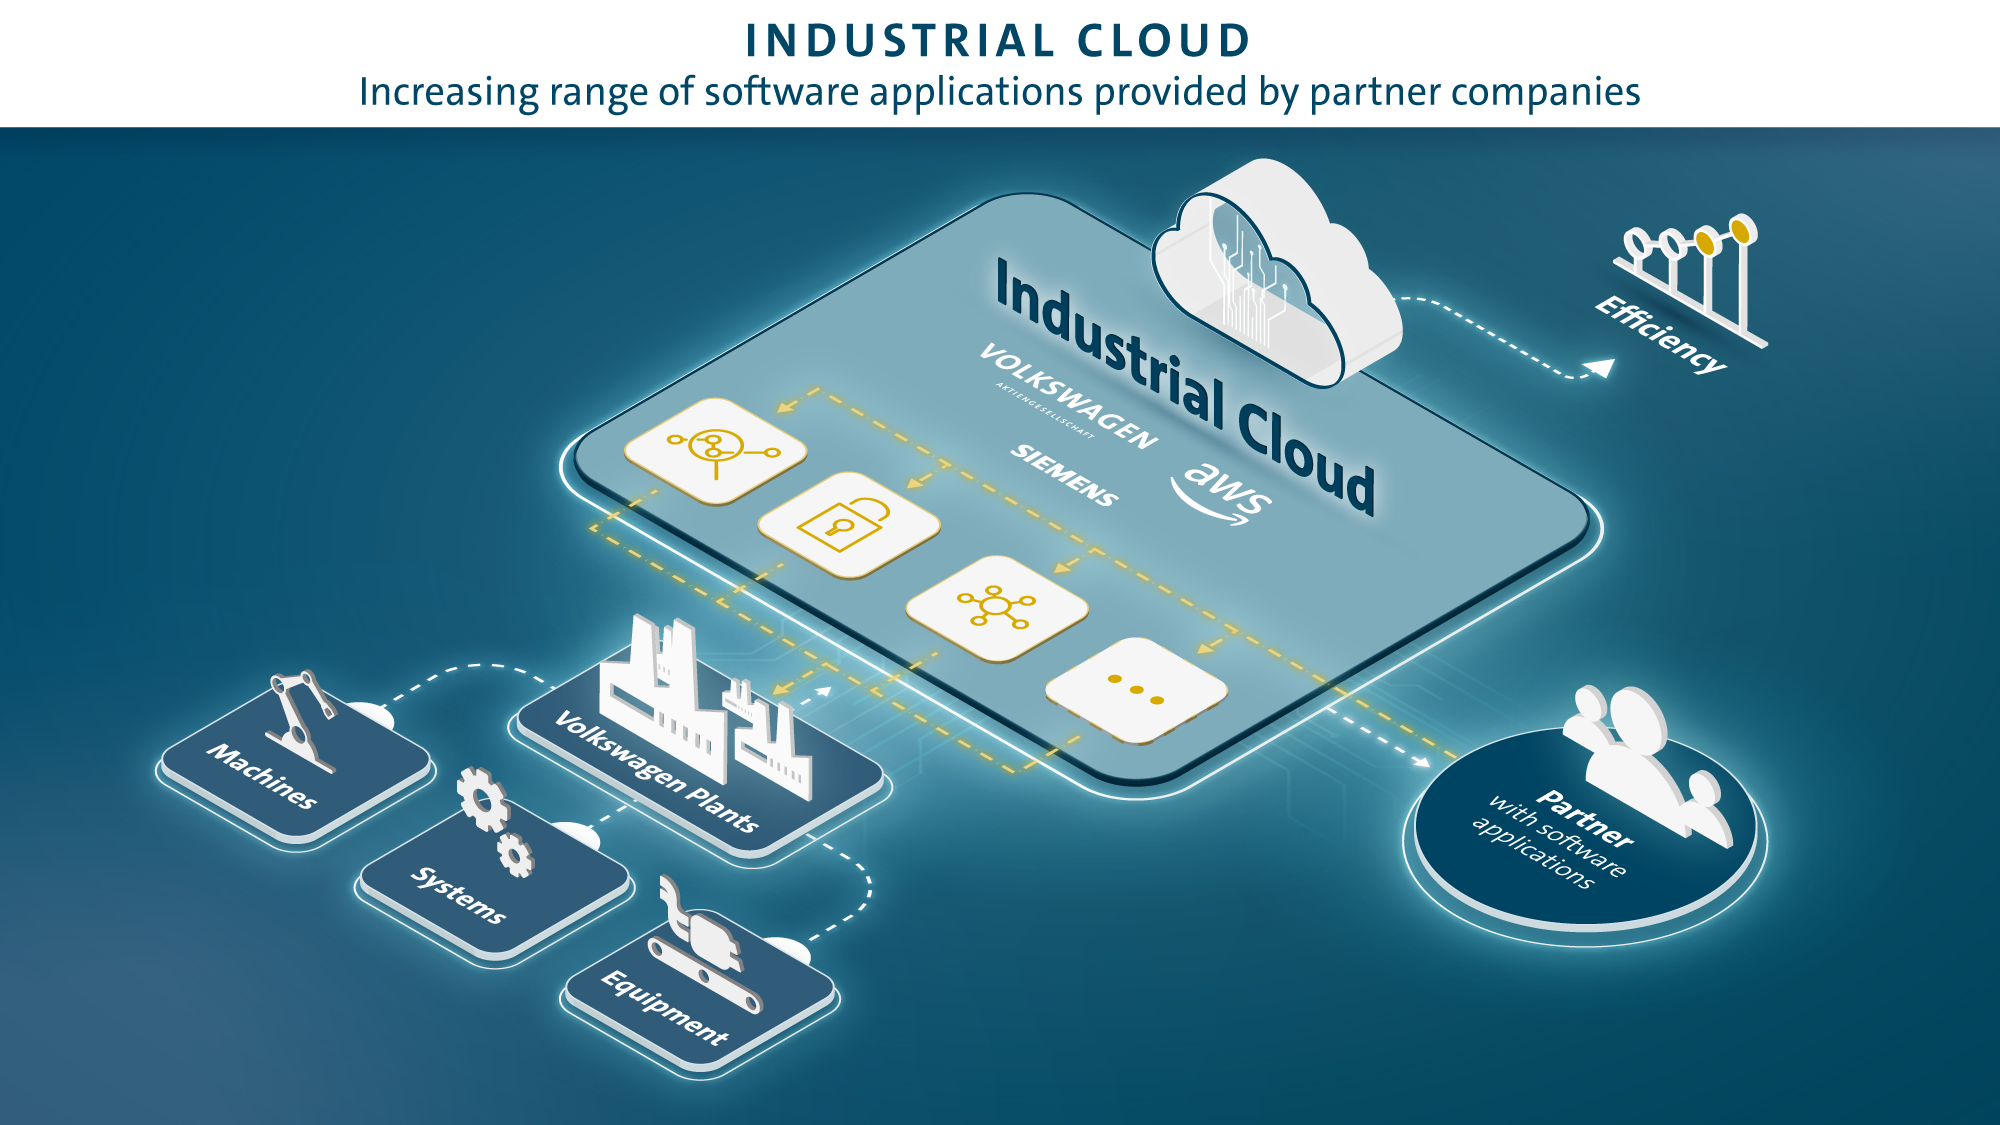 AWS and Volkswagen Industrial Cloud